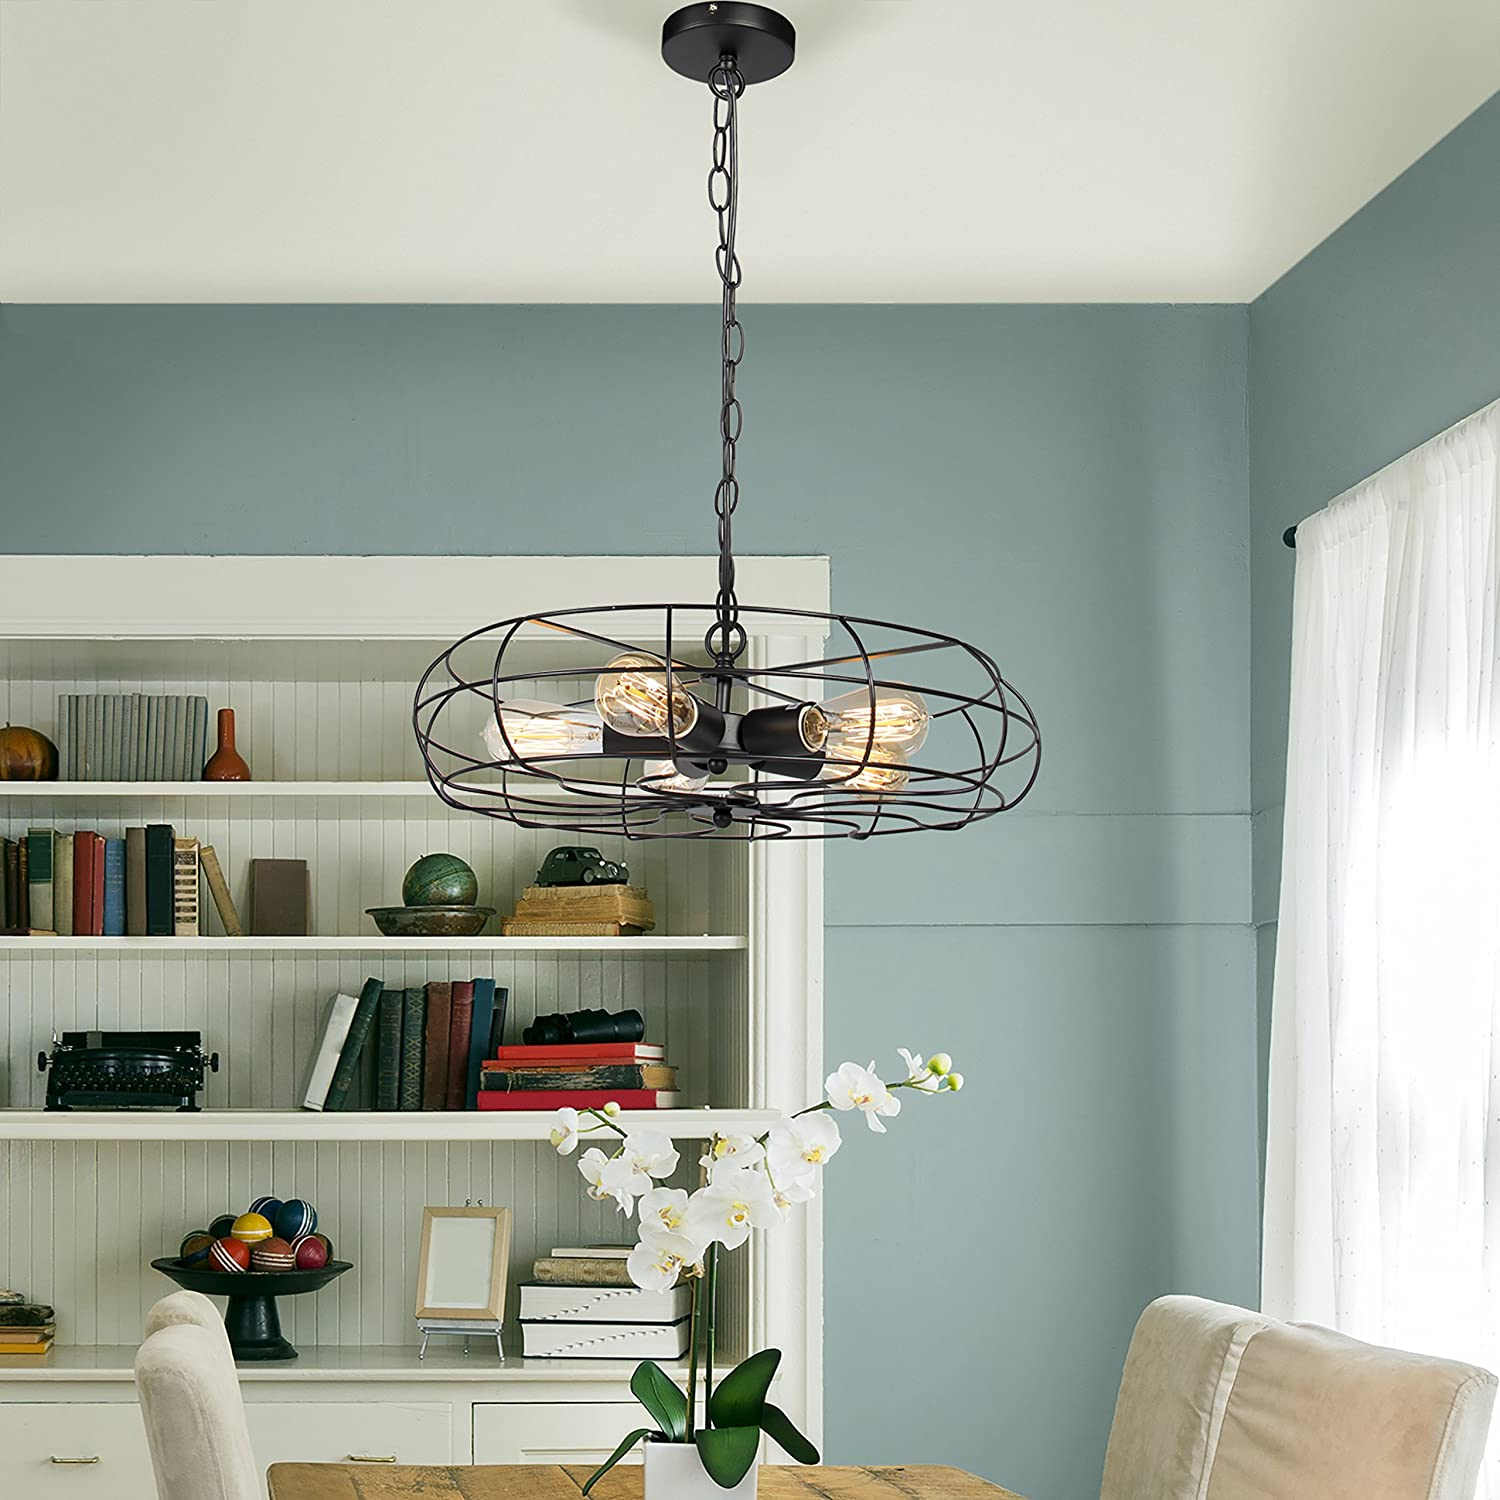 Best Choice Products Industrial Vintage Lighting Ceiling Chandelier ...